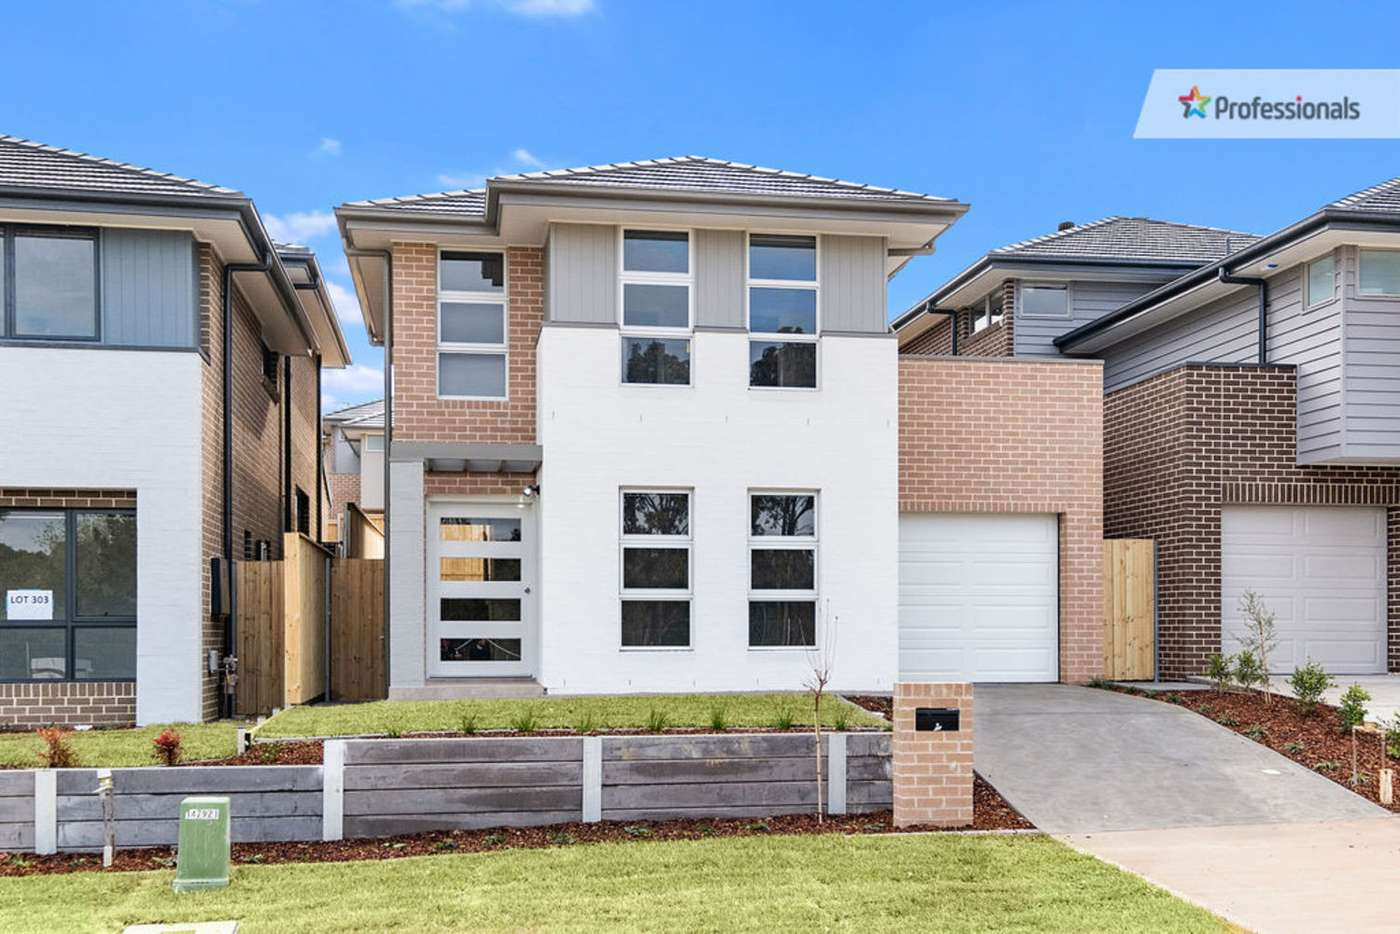 Main view of Homely house listing, 33 Thorpe Way, Box Hill NSW 2765